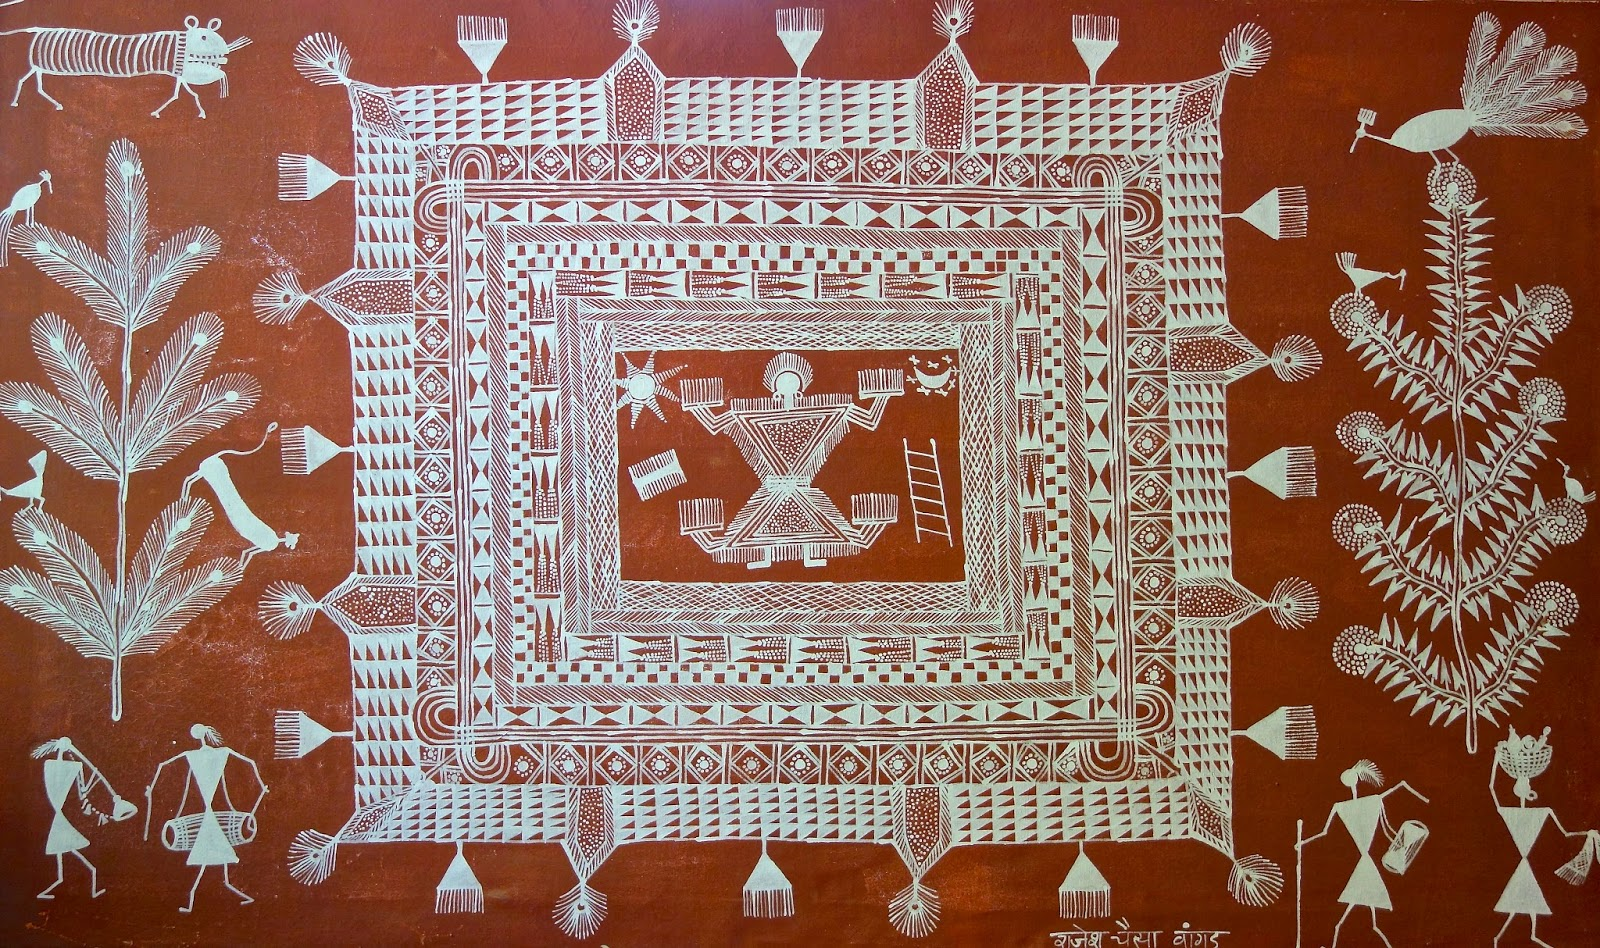 Art and music of warli tribals from maharashtra indian art craft art and music of warli tribals from maharashtra altavistaventures Image collections